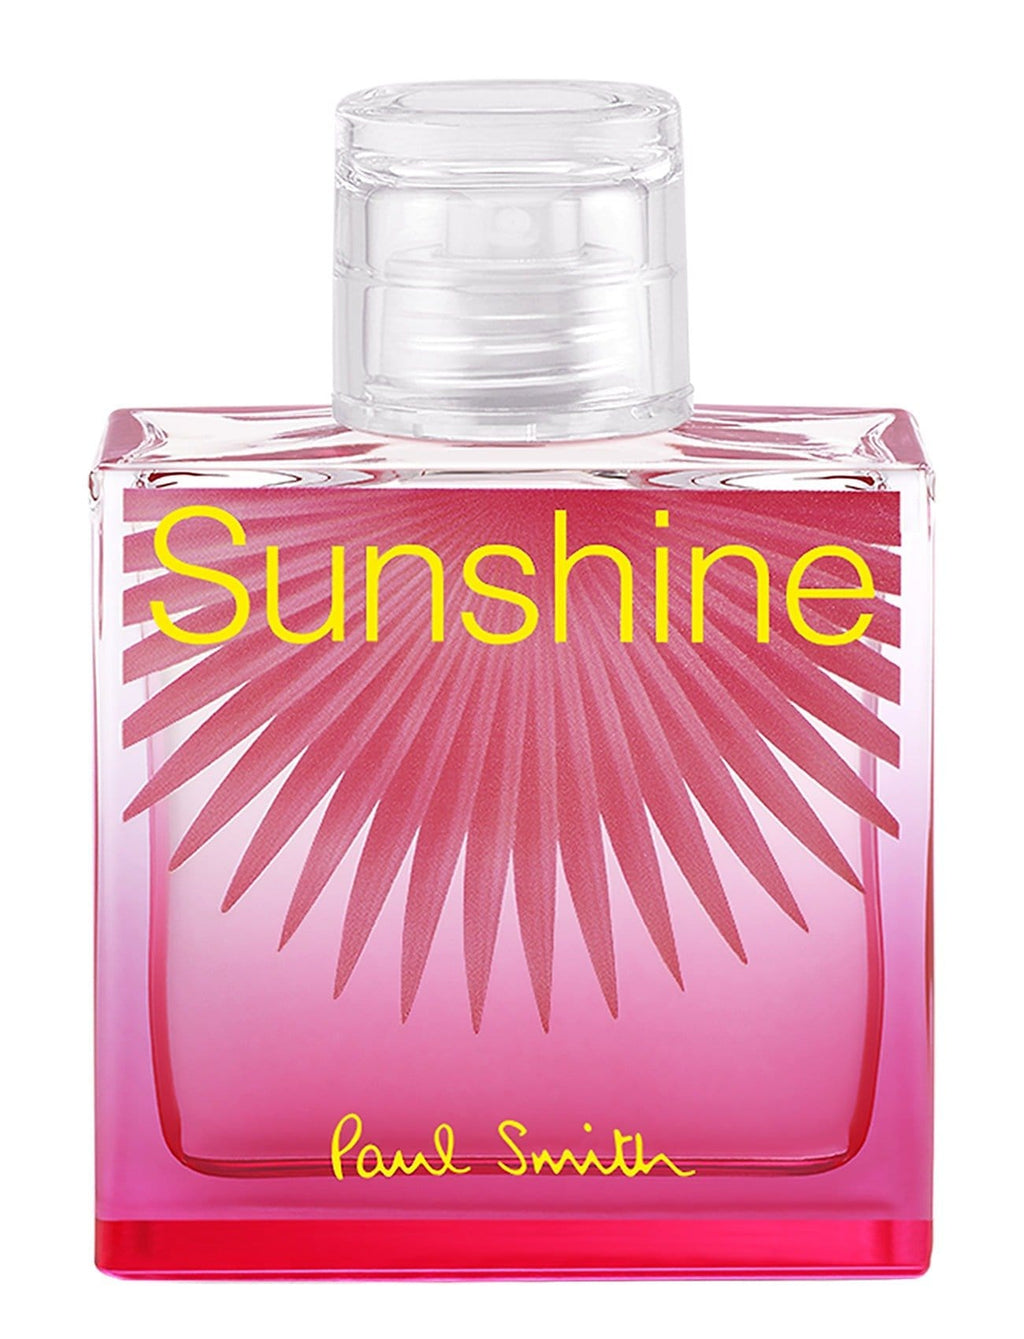 Paul Smith Sunshine Femme 2019 Limited Edition 100ml EDT